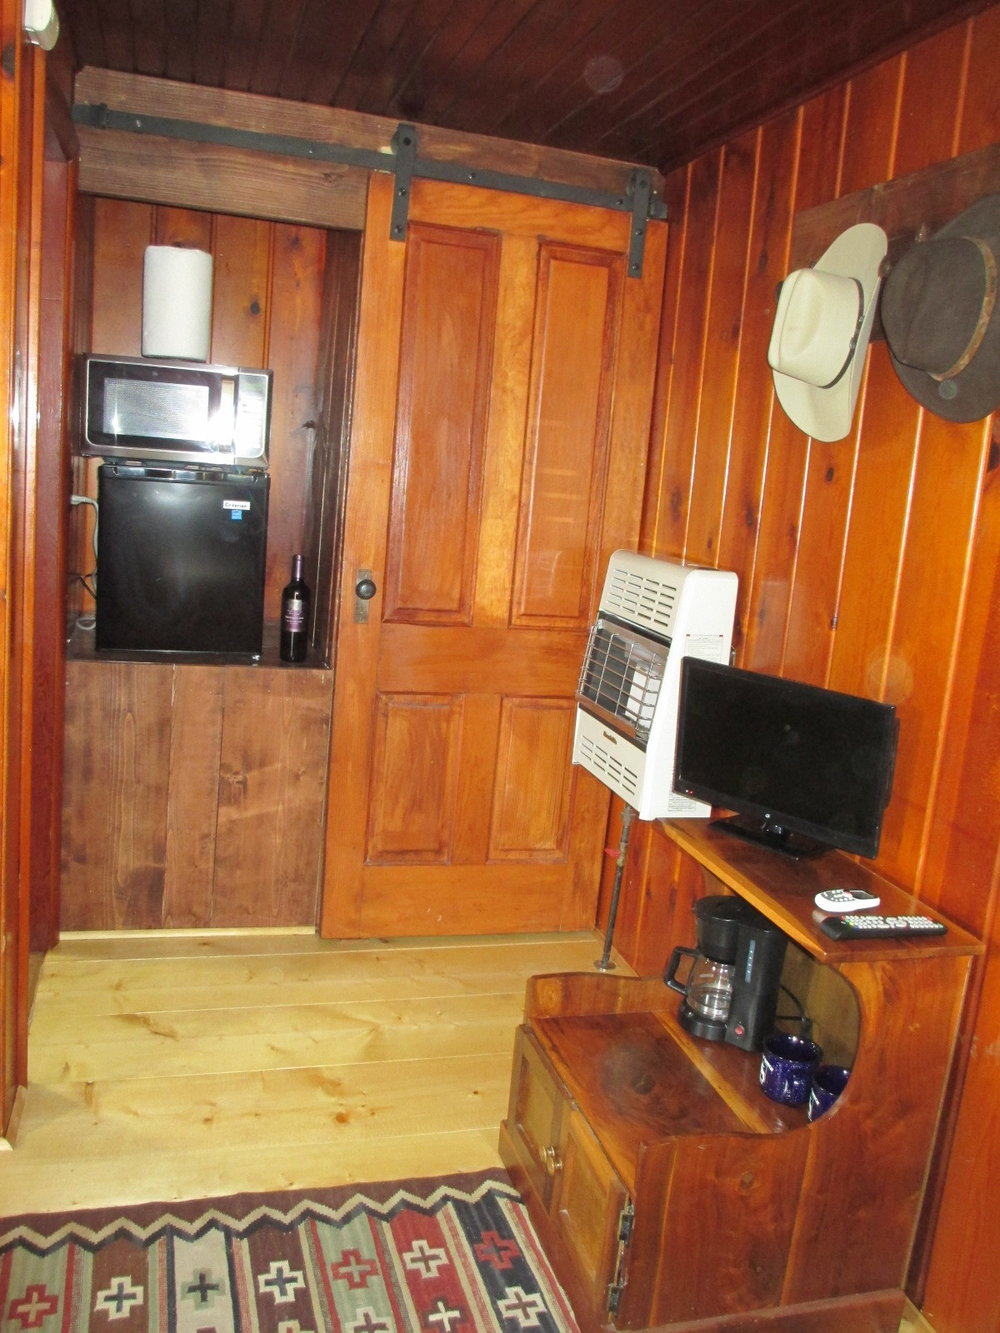 The Fire House TV, kitchenette, and closet